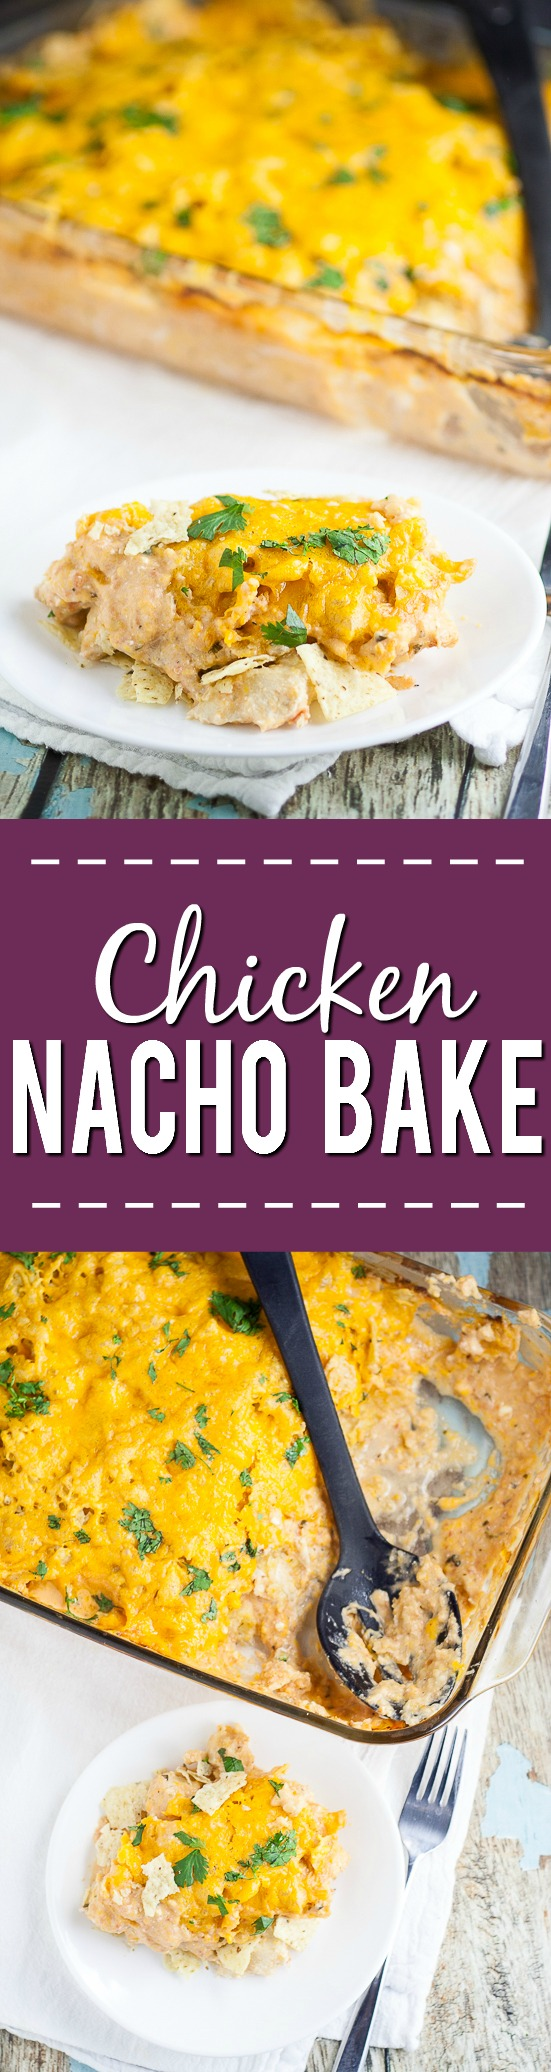 Chicken Nacho Bake Recipe - Creamy, crunchy, and cheesy, this Chicken Nacho Bake recipe is a crowd-pleasing easy casserole recipe with just 5 ingredients.  Cheesy, quick and easy family dinner recipe with chicken breast.